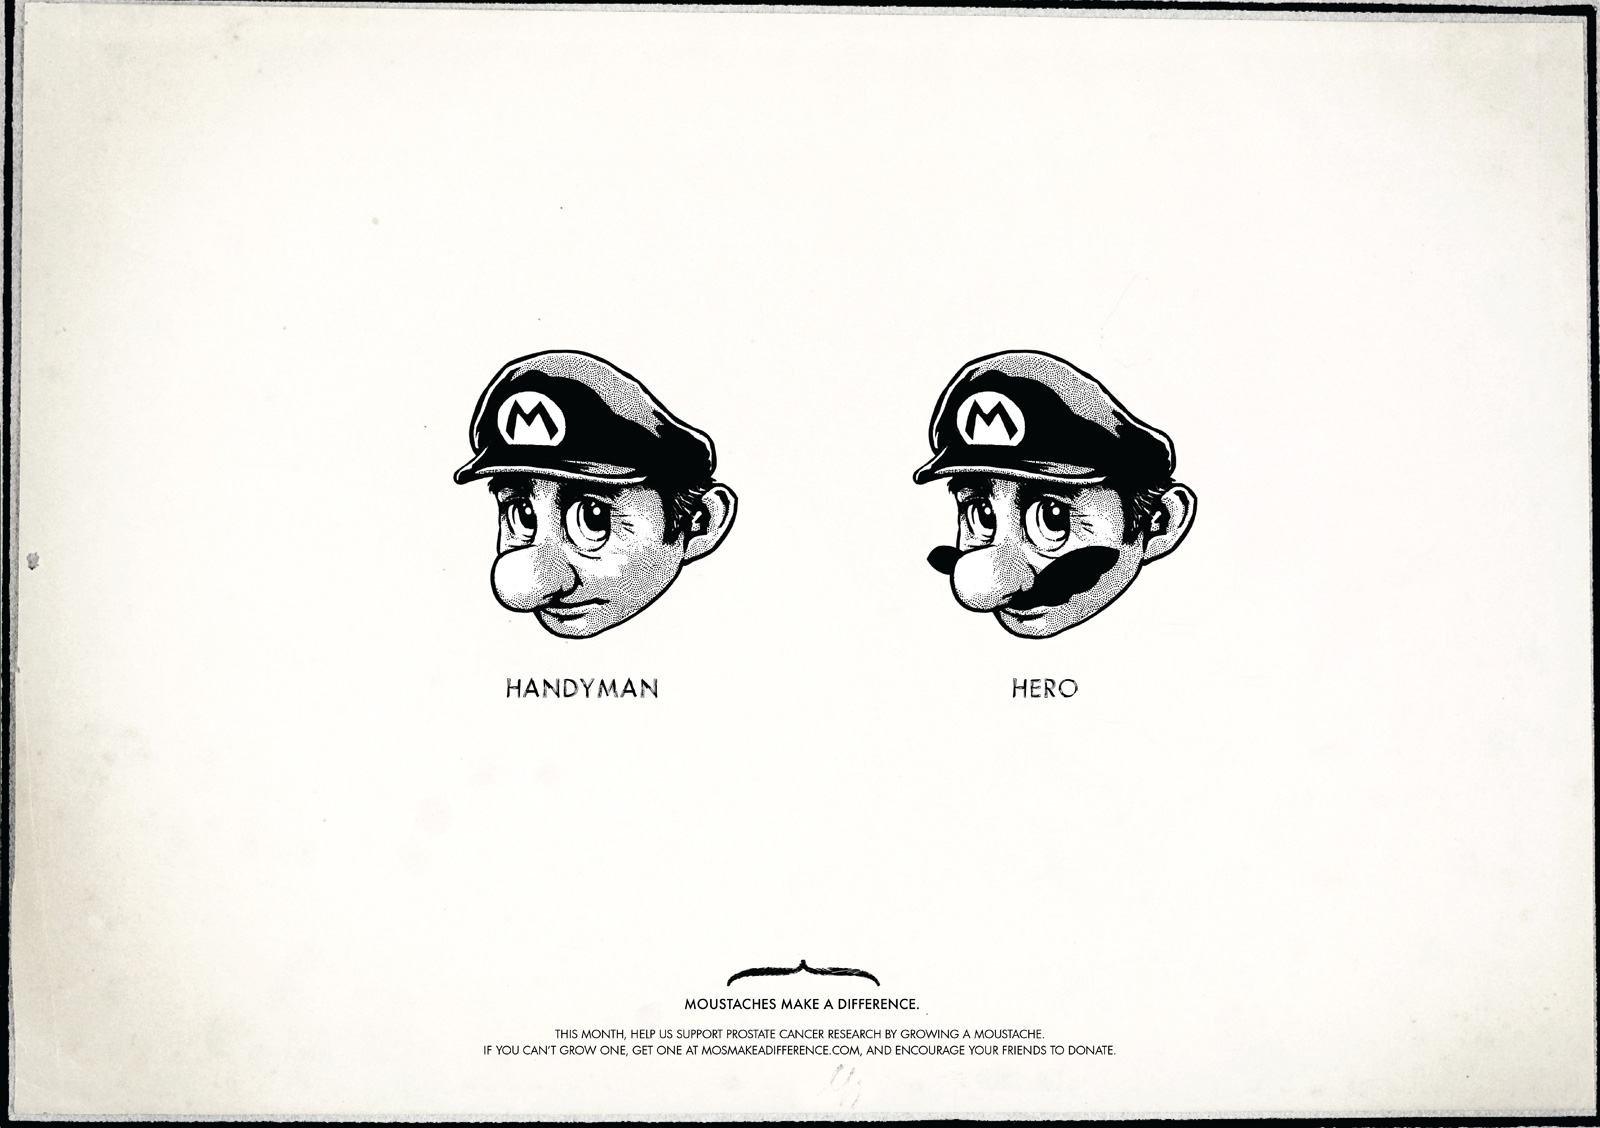 http://3.bp.blogspot.com/_42nL05s3A-8/TNnx-k6BANI/AAAAAAAADBI/Fdy7b6Ek2b0/s1600/Moustaches-Make-A-Difference-supermario.jpg